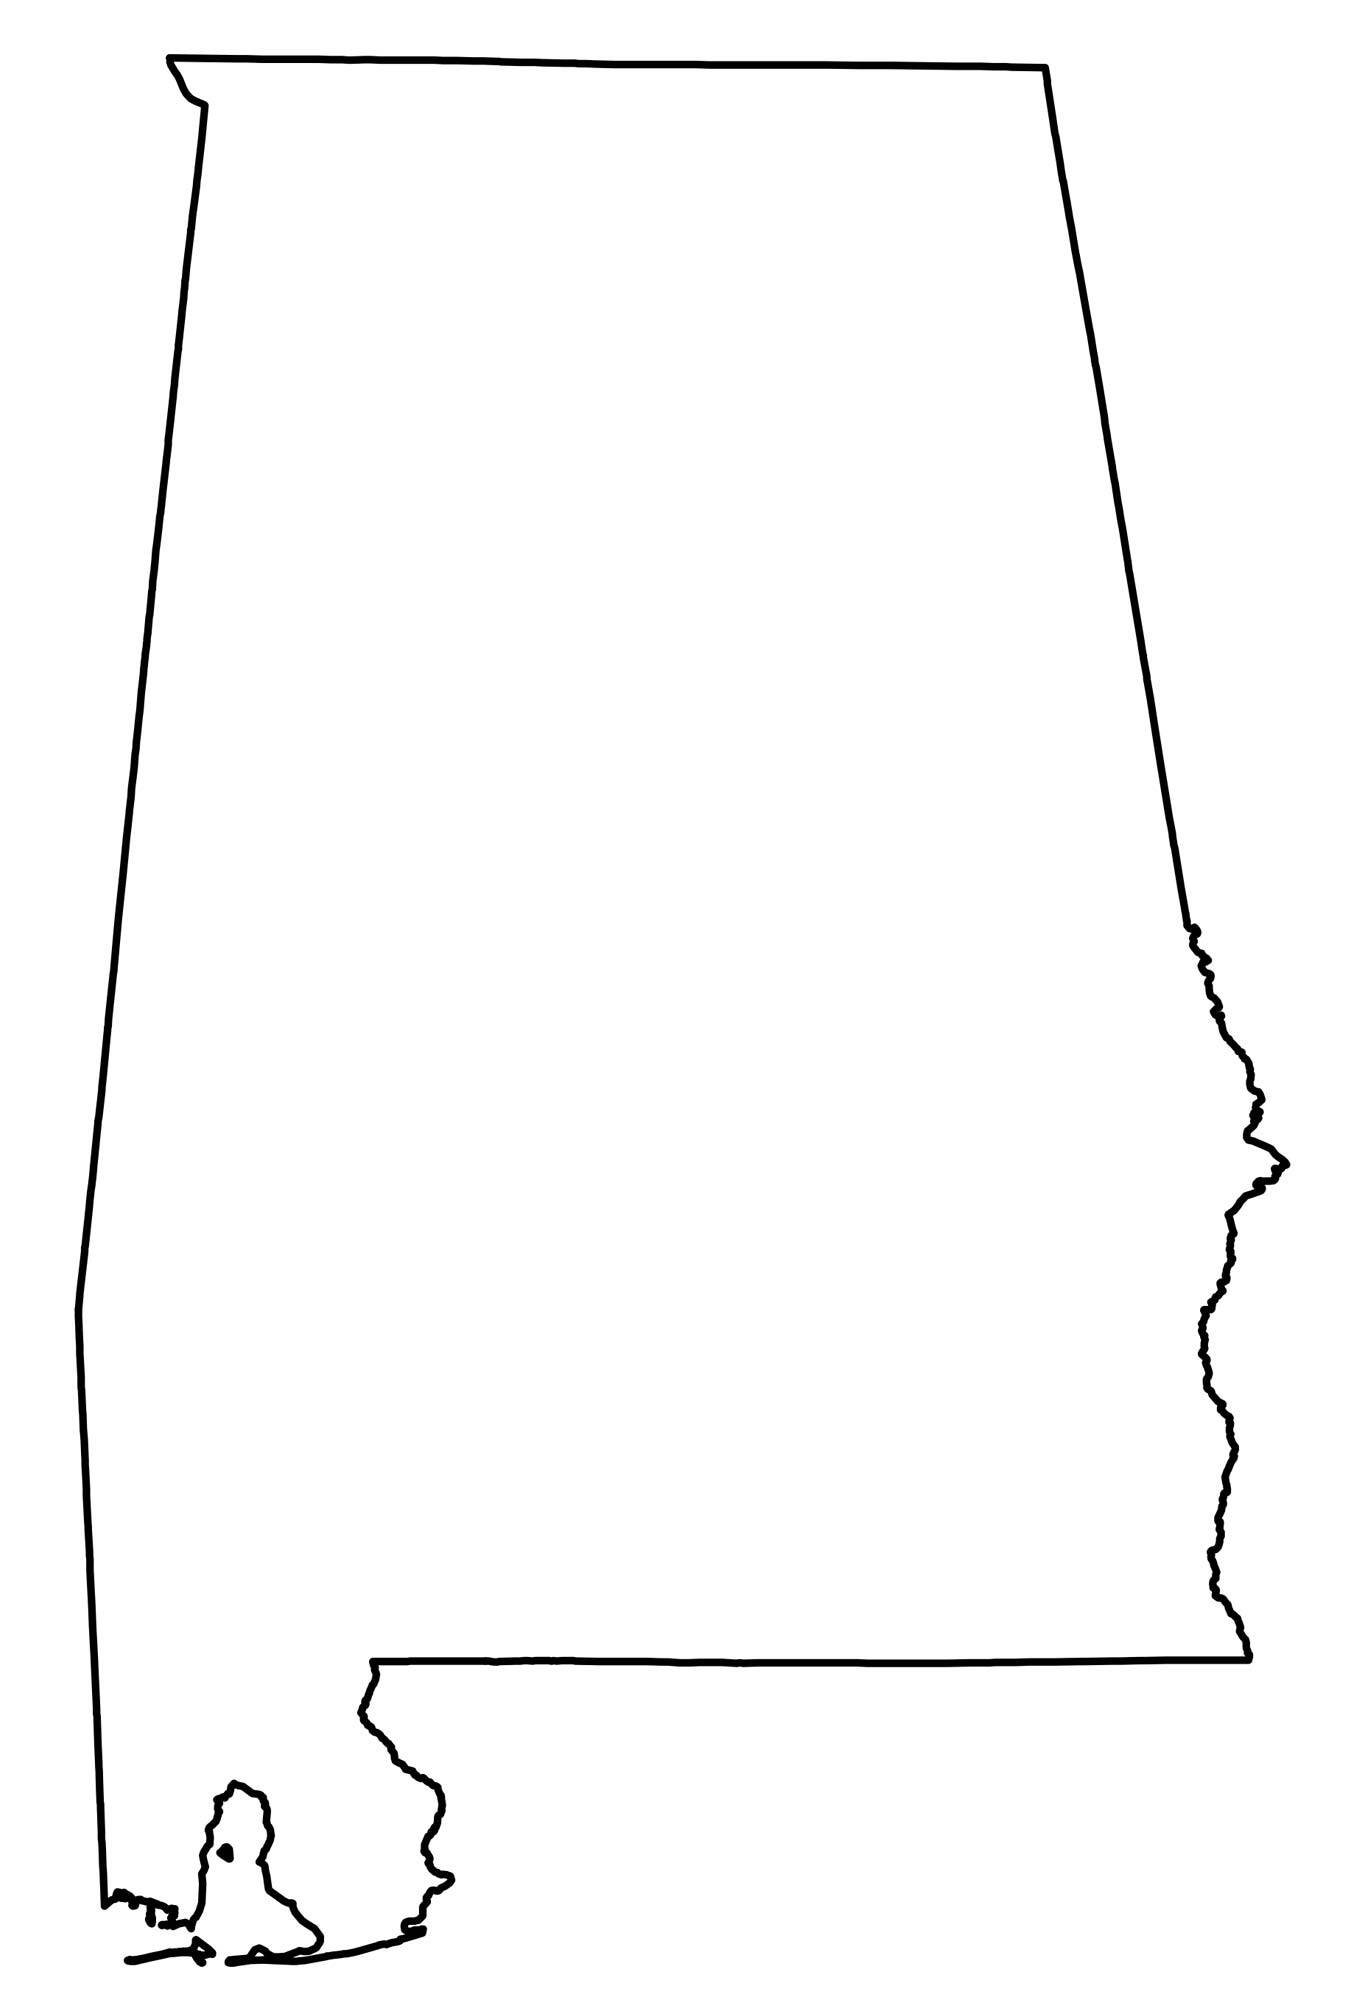 State Outlines Blank Maps Of The 50 United States Gis Geography